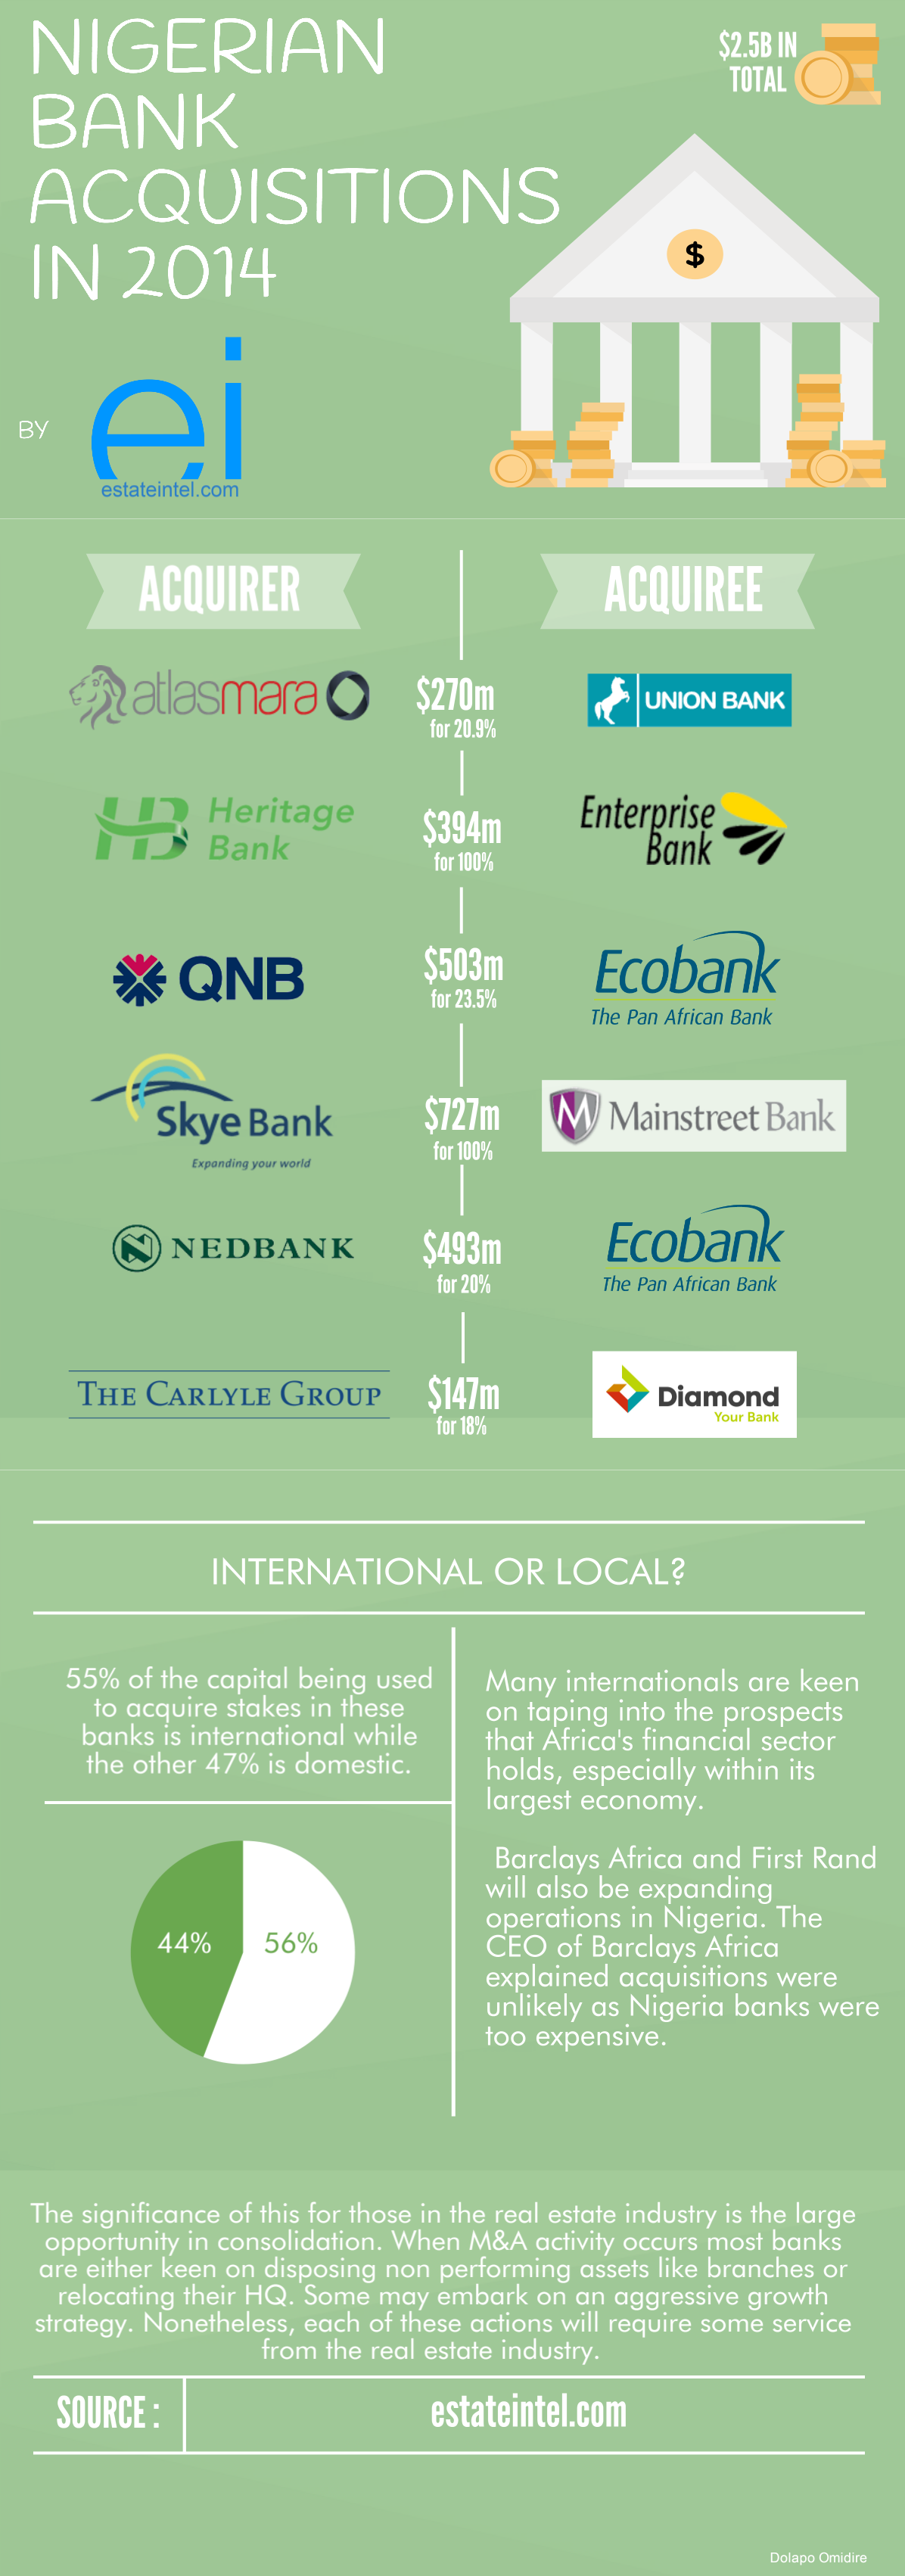 Nigerian Bank Acquisitions by estate intel